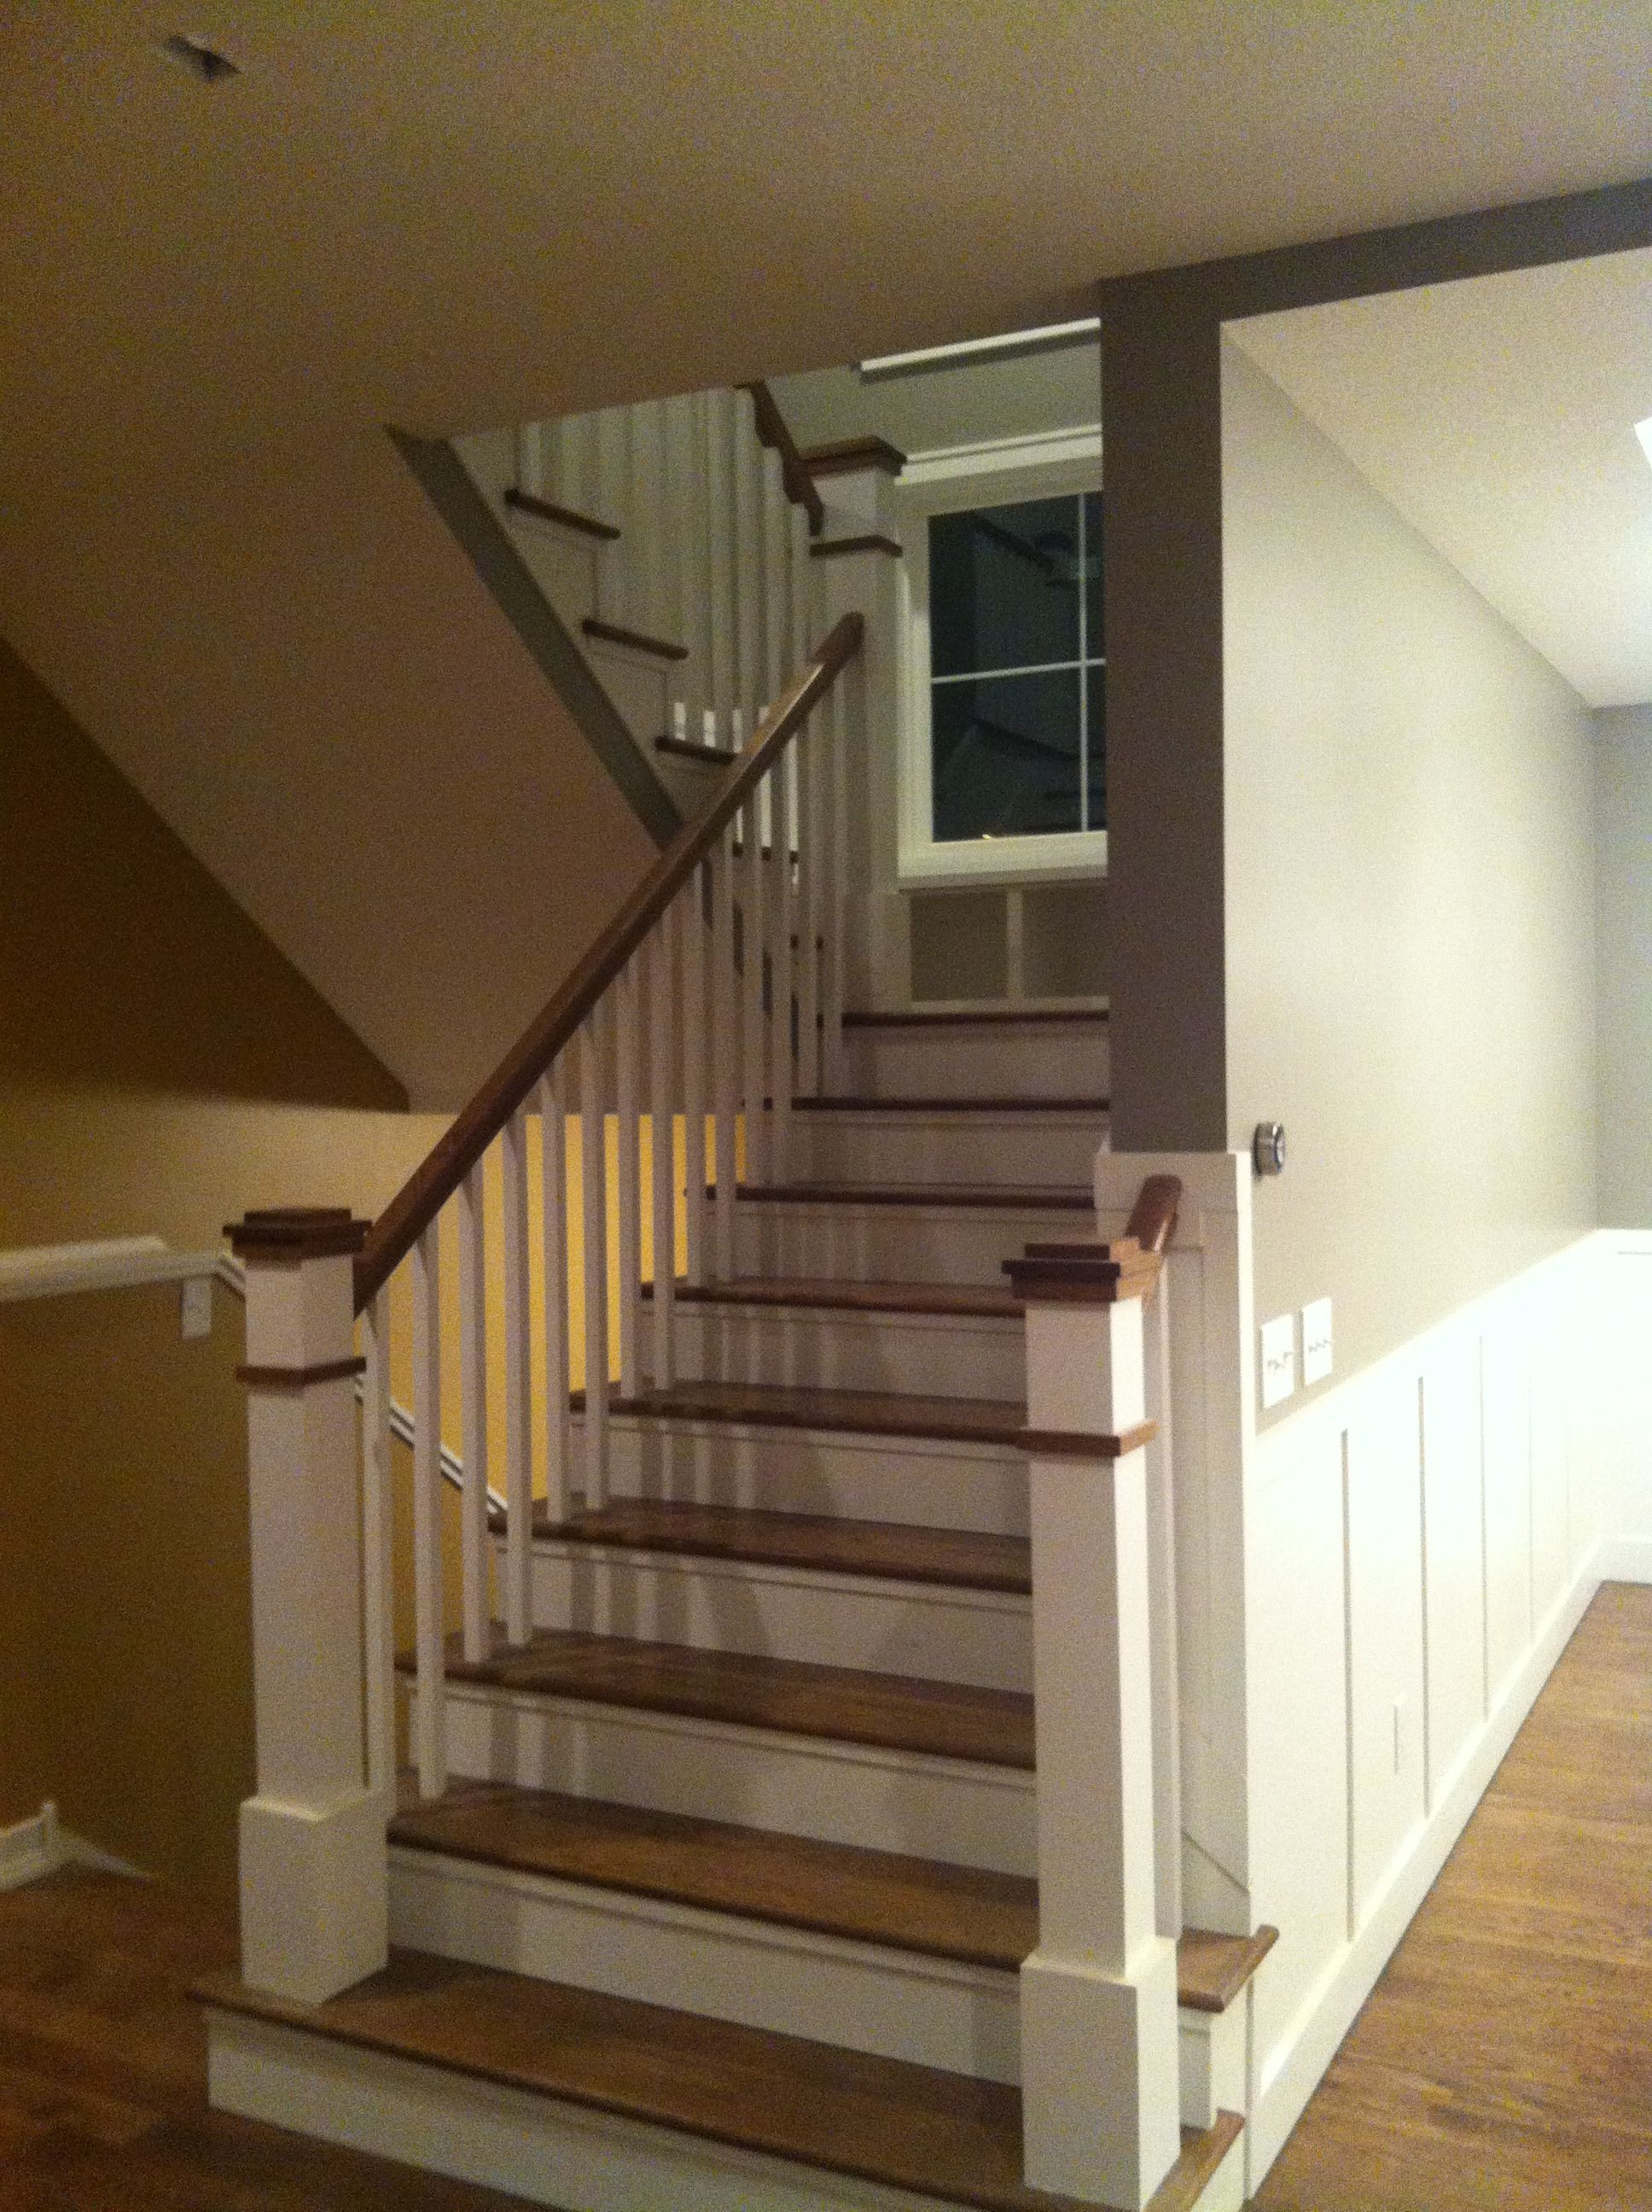 how to install hardwood floors on stairs landing of staircase window seat on landing custom newell post dark treads for staircase window seat on landing custom newell post dark treads white risers on stairs white balusters and dark stained railings and caps